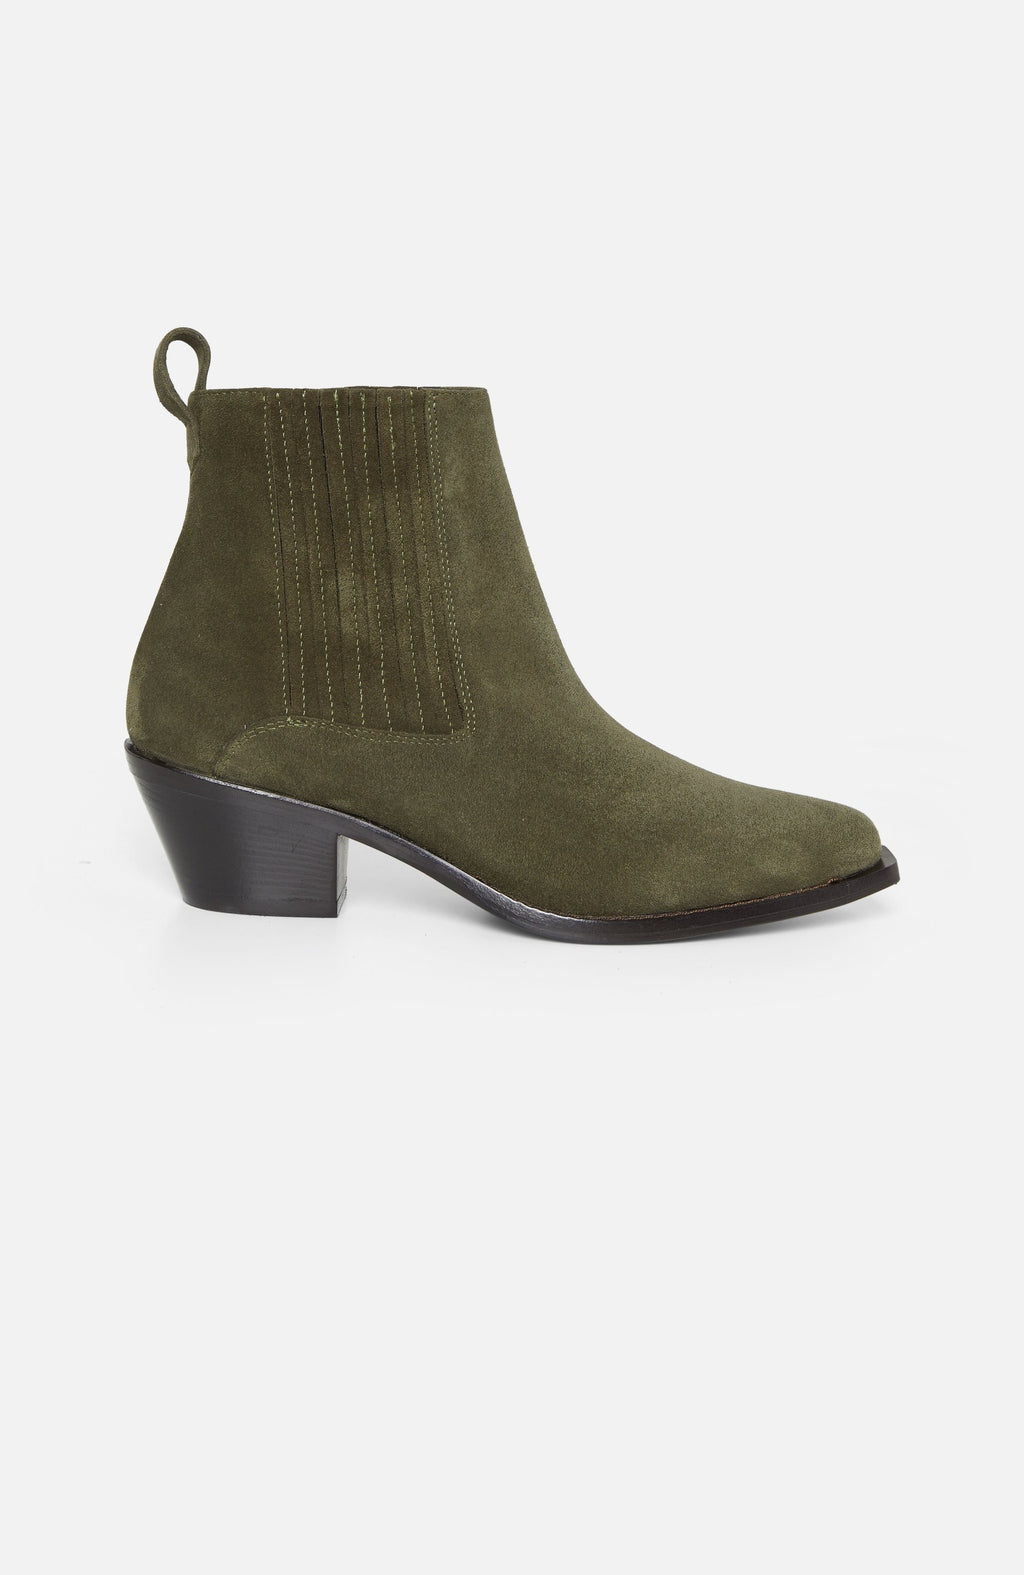 Atelier Mercadal Khaki Suede Ankle Boots